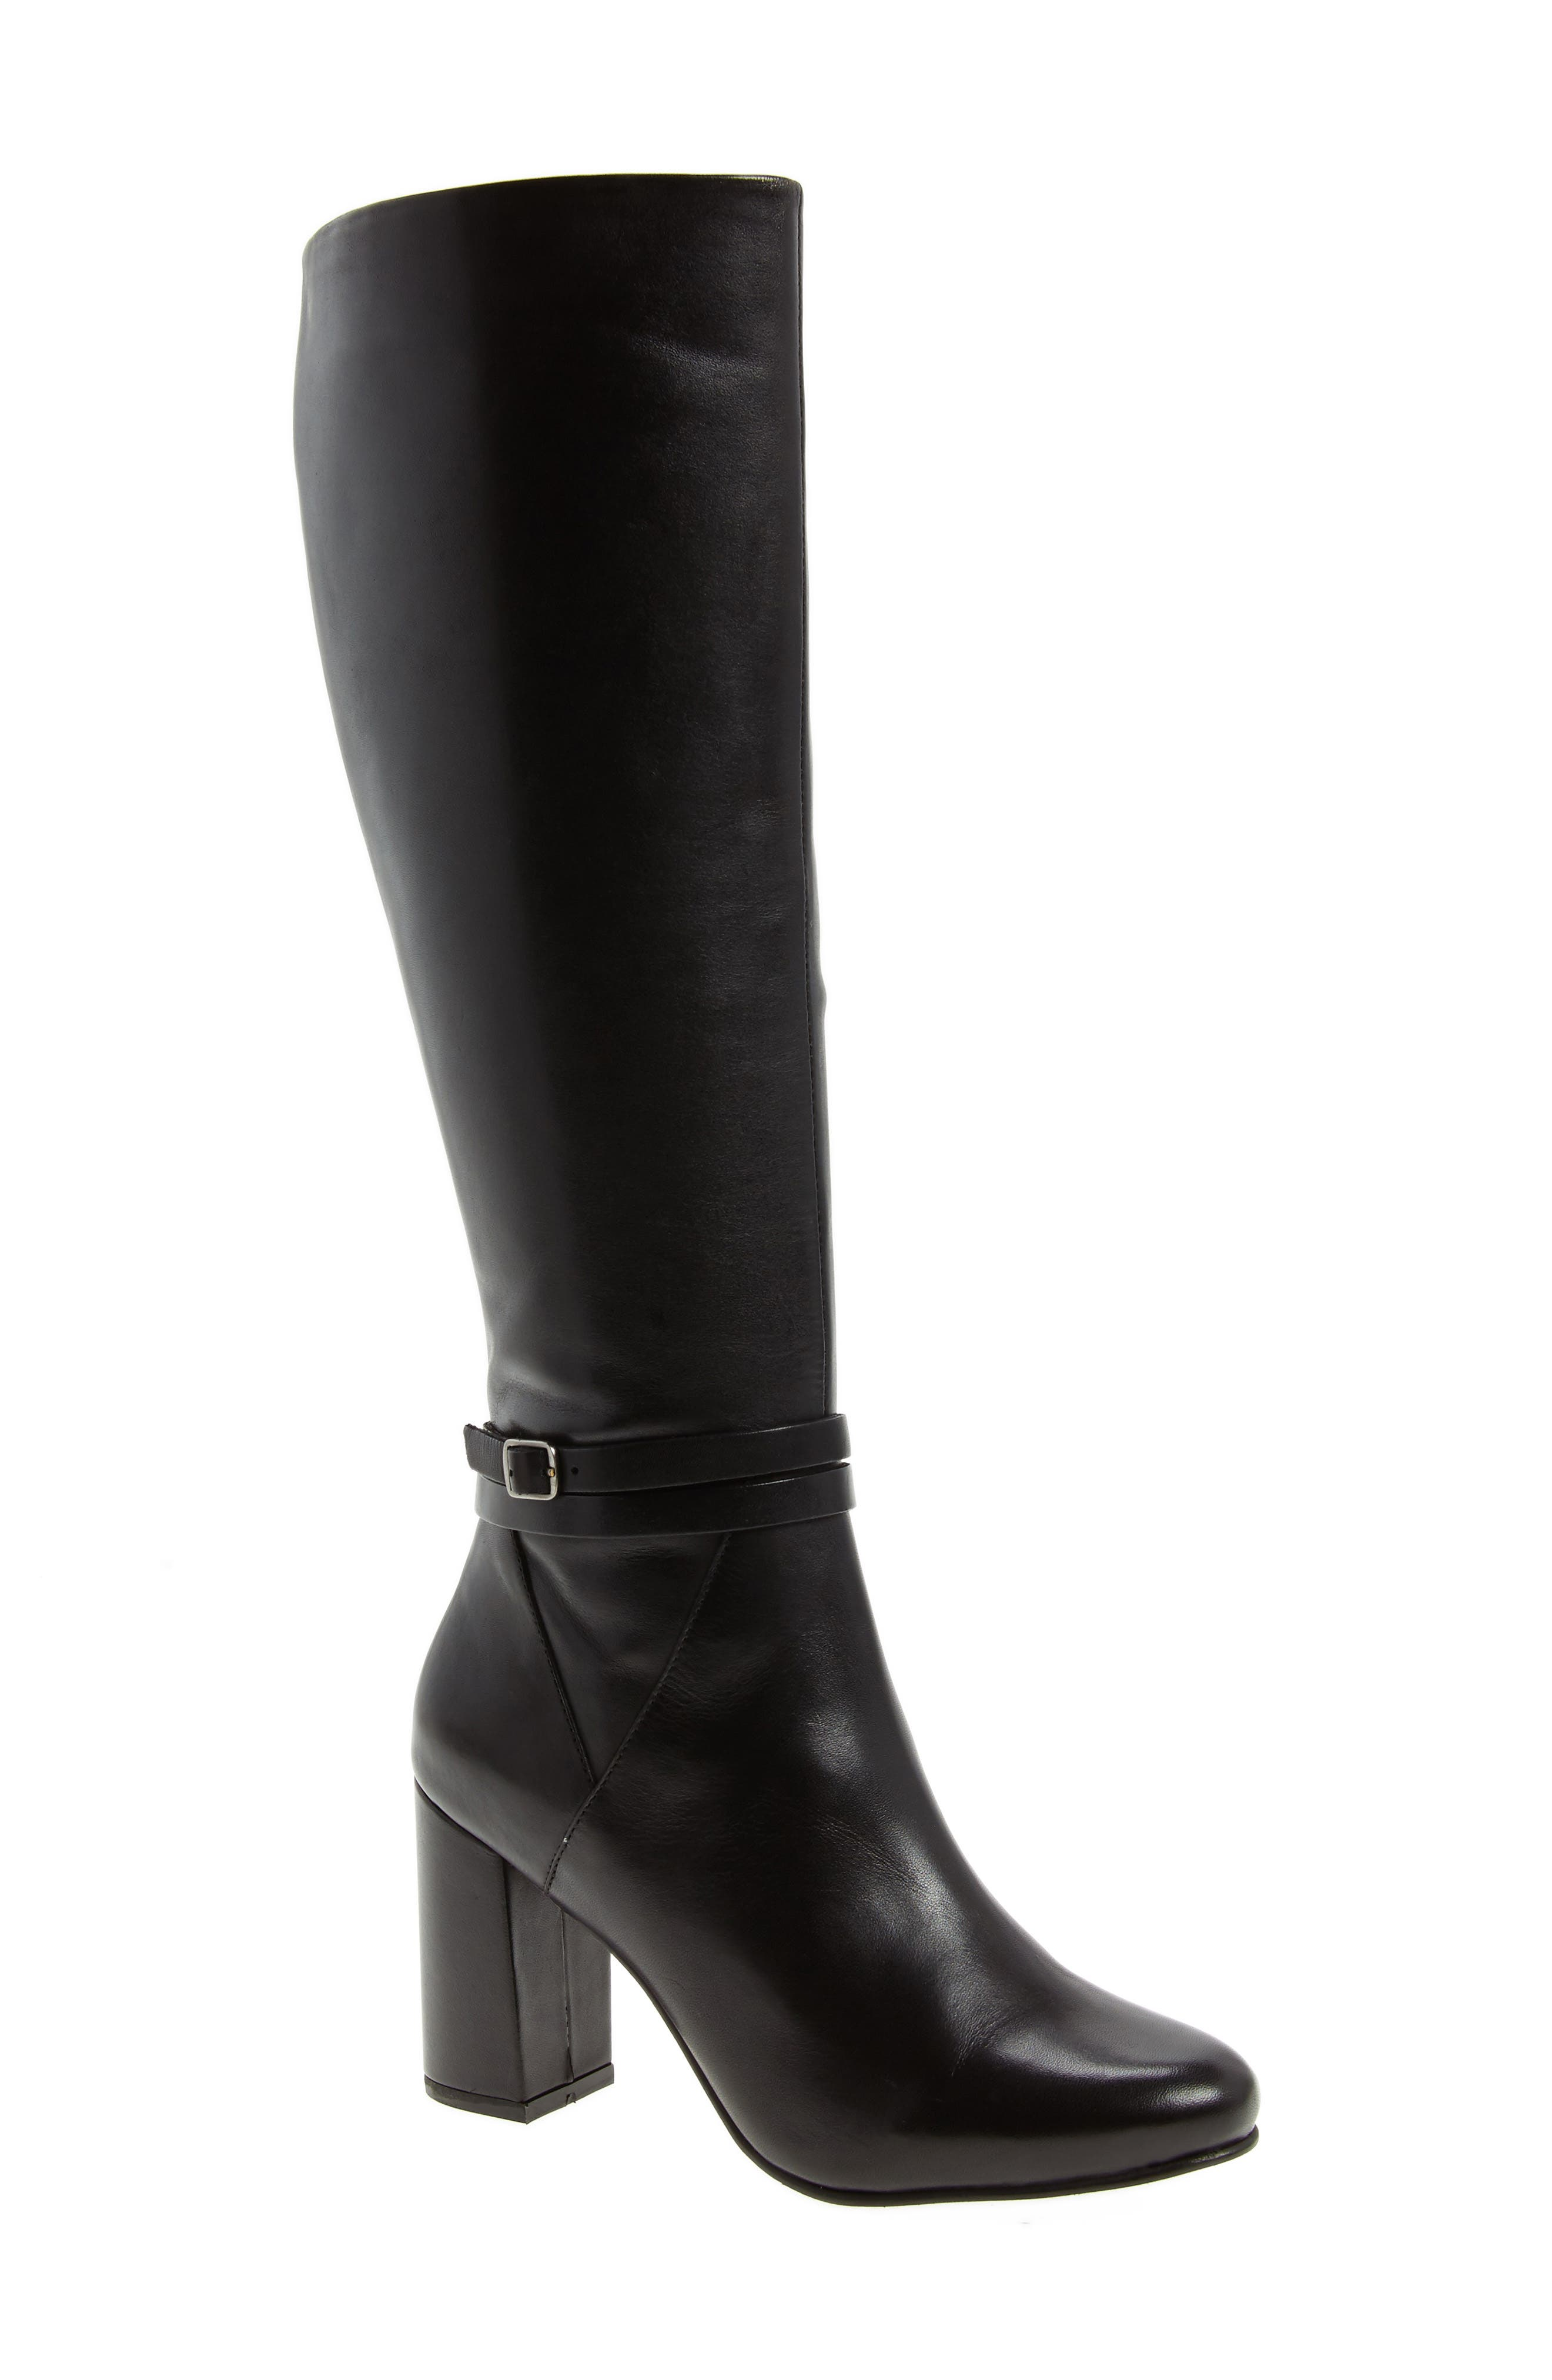 Alternate Image 1 Selected - Seychelles Ovation Knee High Boot (Women)